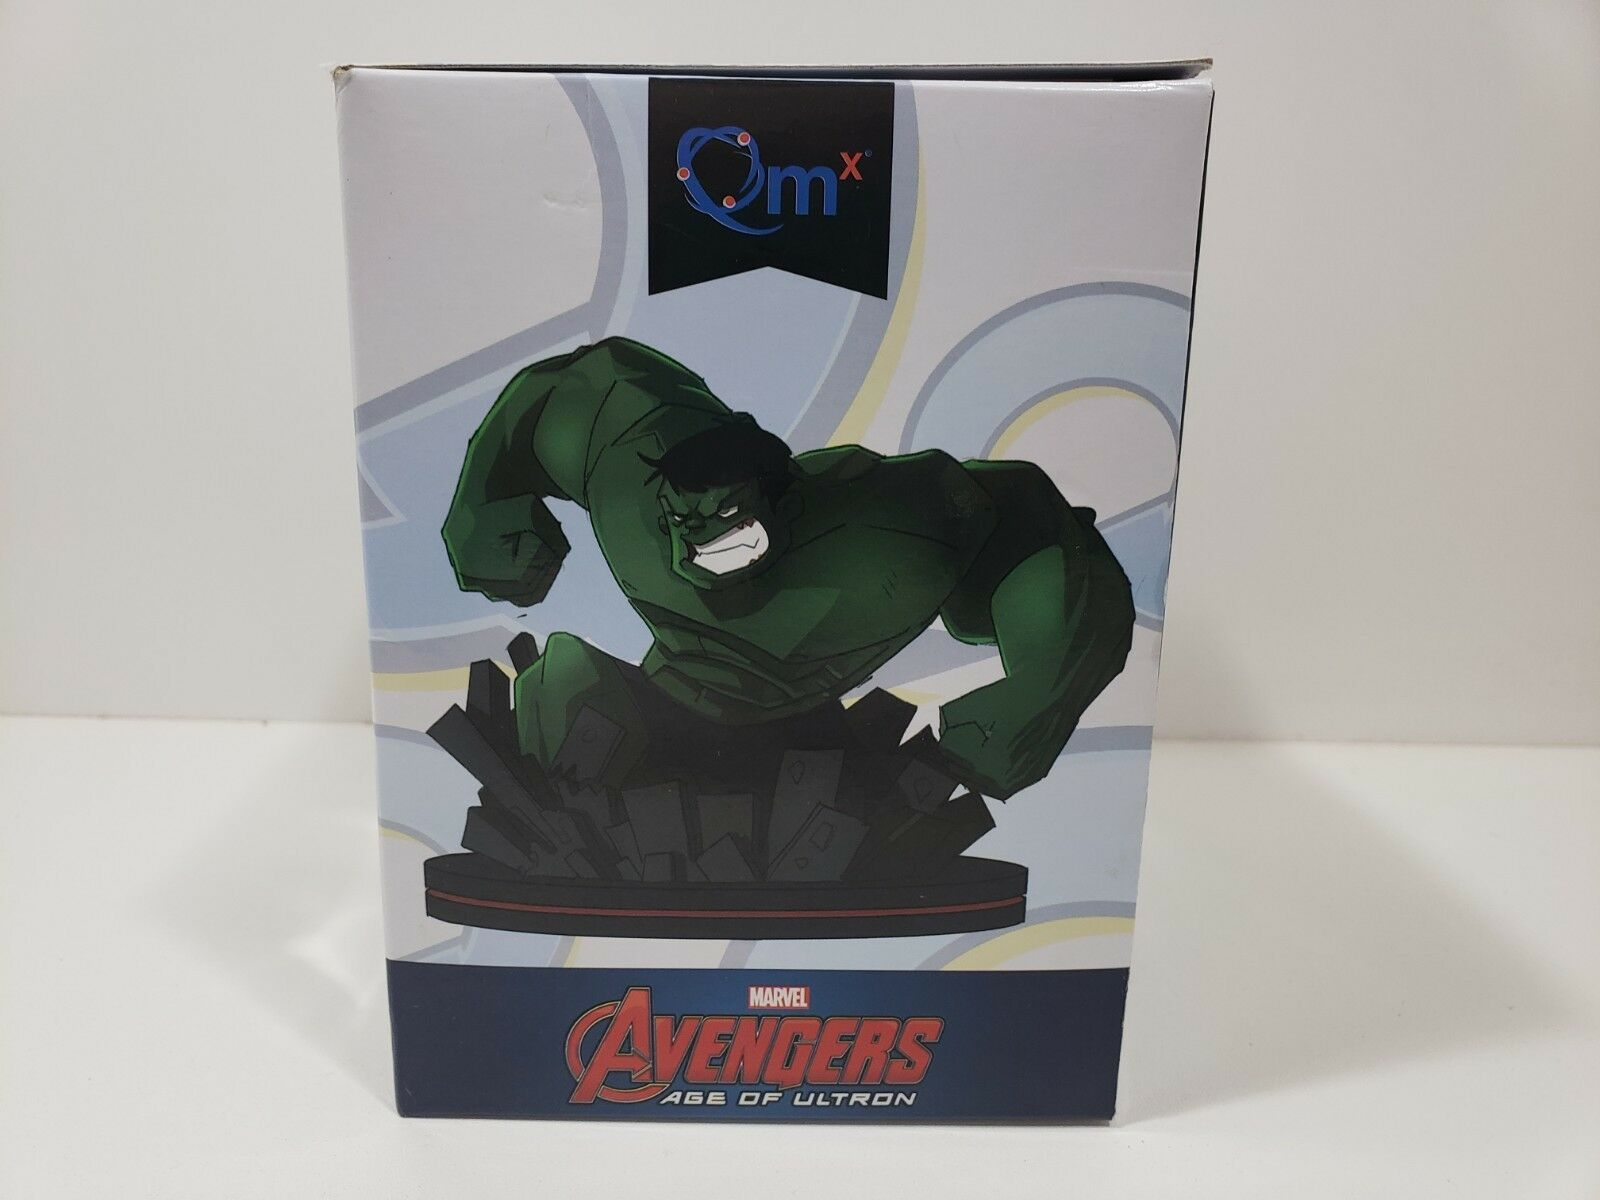 The Hulk QMX Q Fig, Marvel Avengers Age of Ultron, New Open box image 2